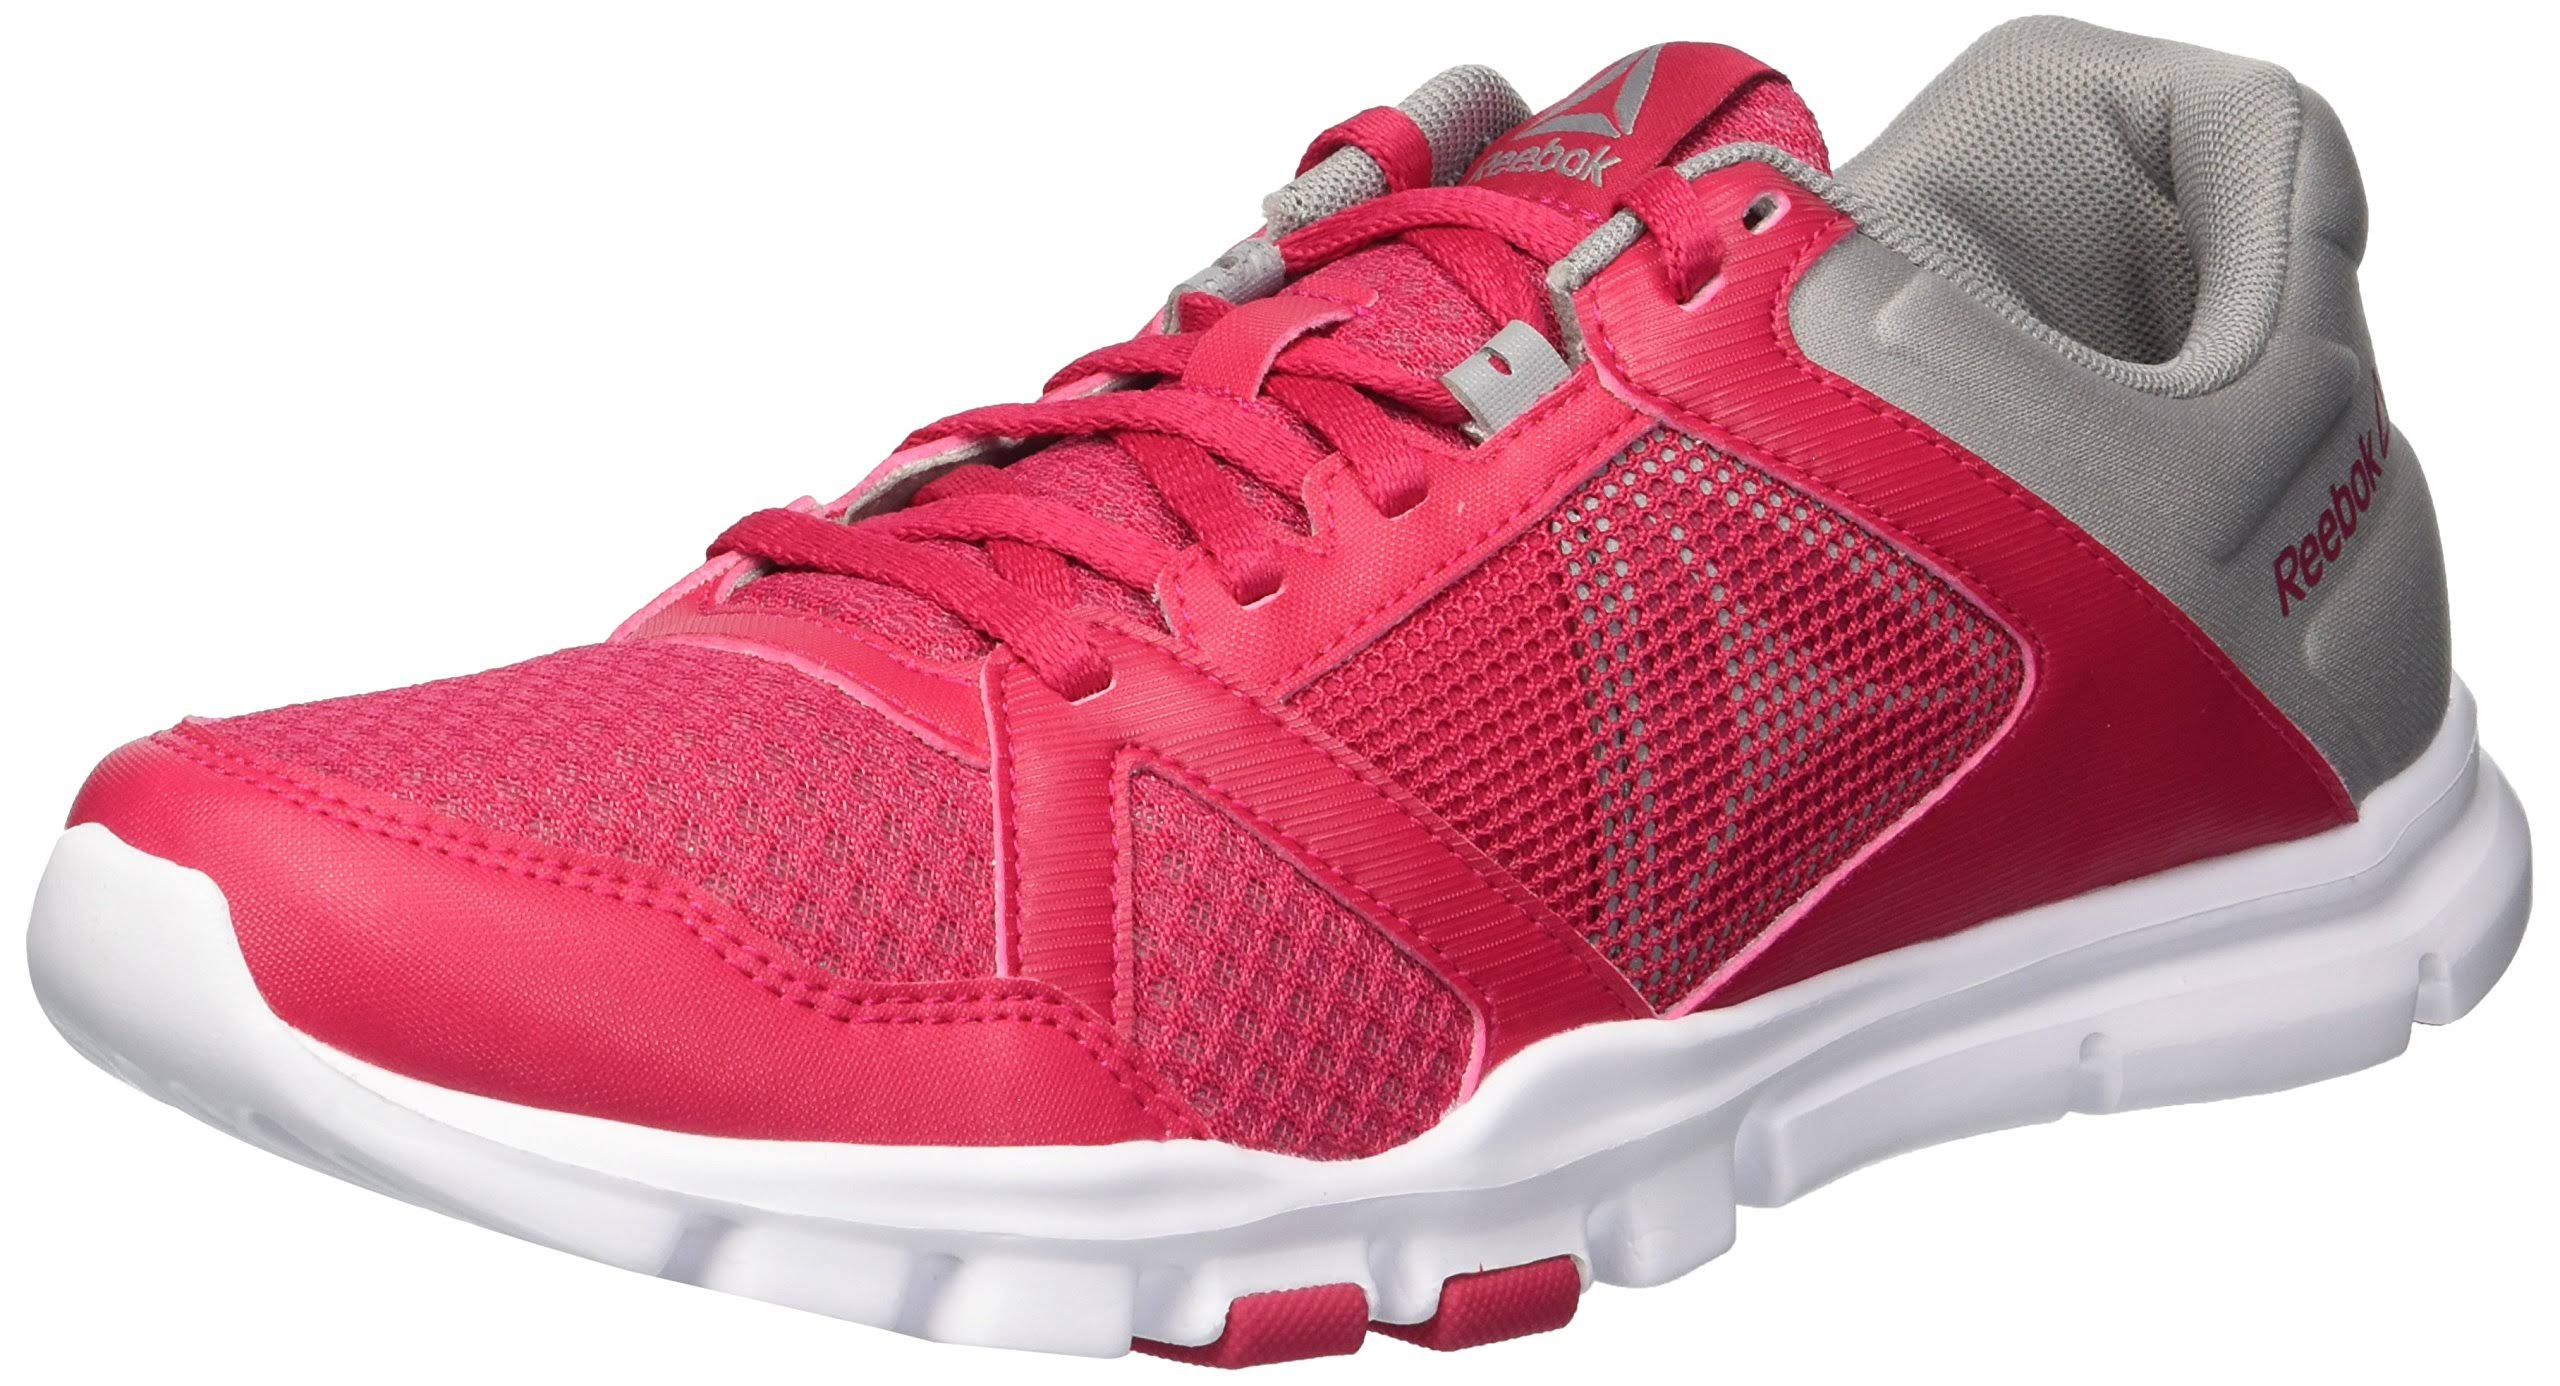 Yourflex Trainer Trainette Mt 10 Reebok Cross Frauen Für ZBWPq